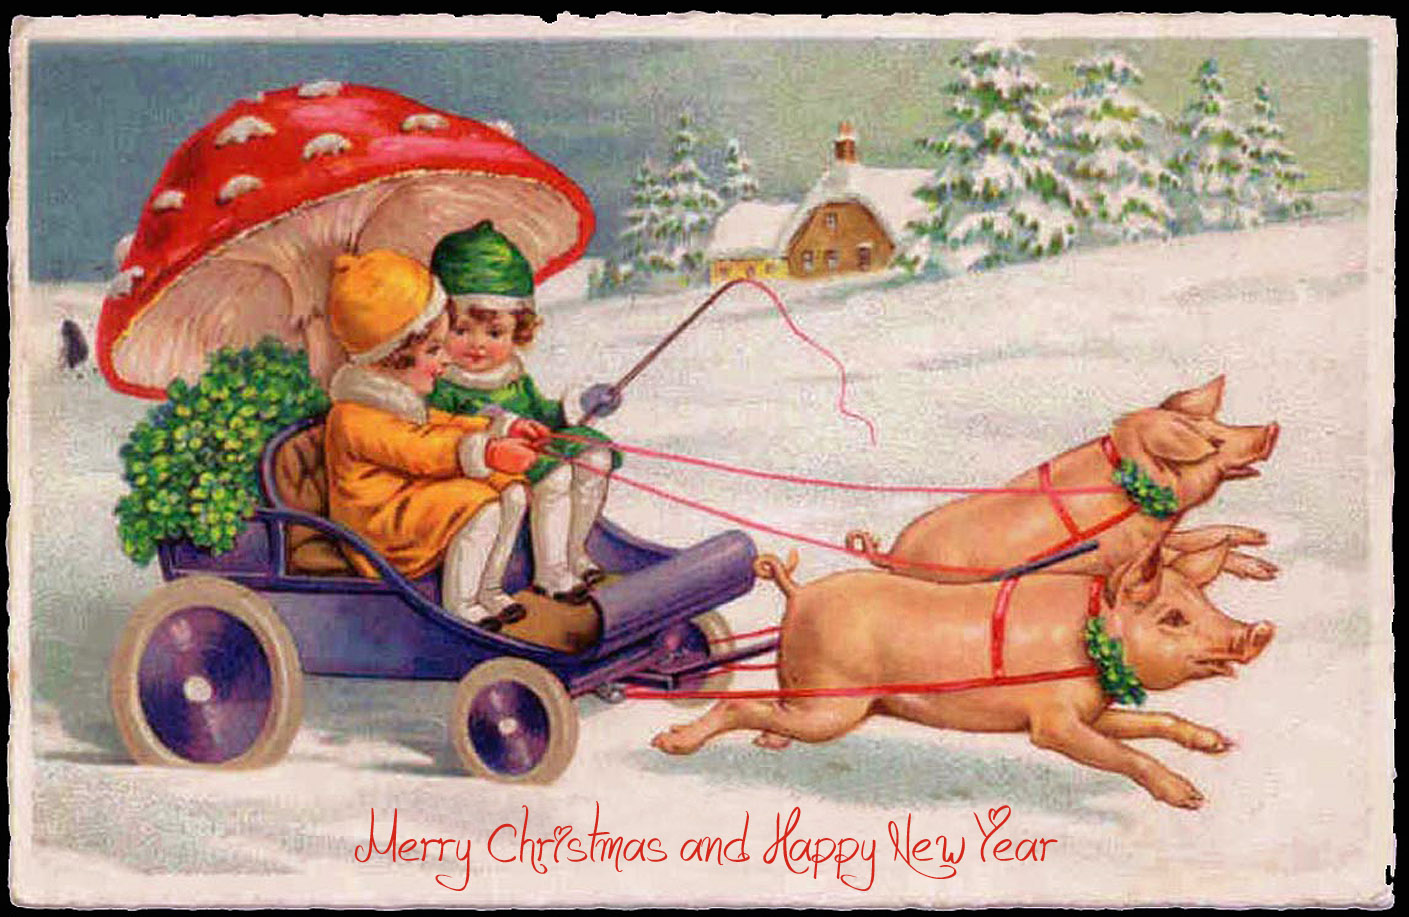 Kids using a huge mushroom as umbrella ride a small carriage pulled by pigs - funny Christmas and New Year card